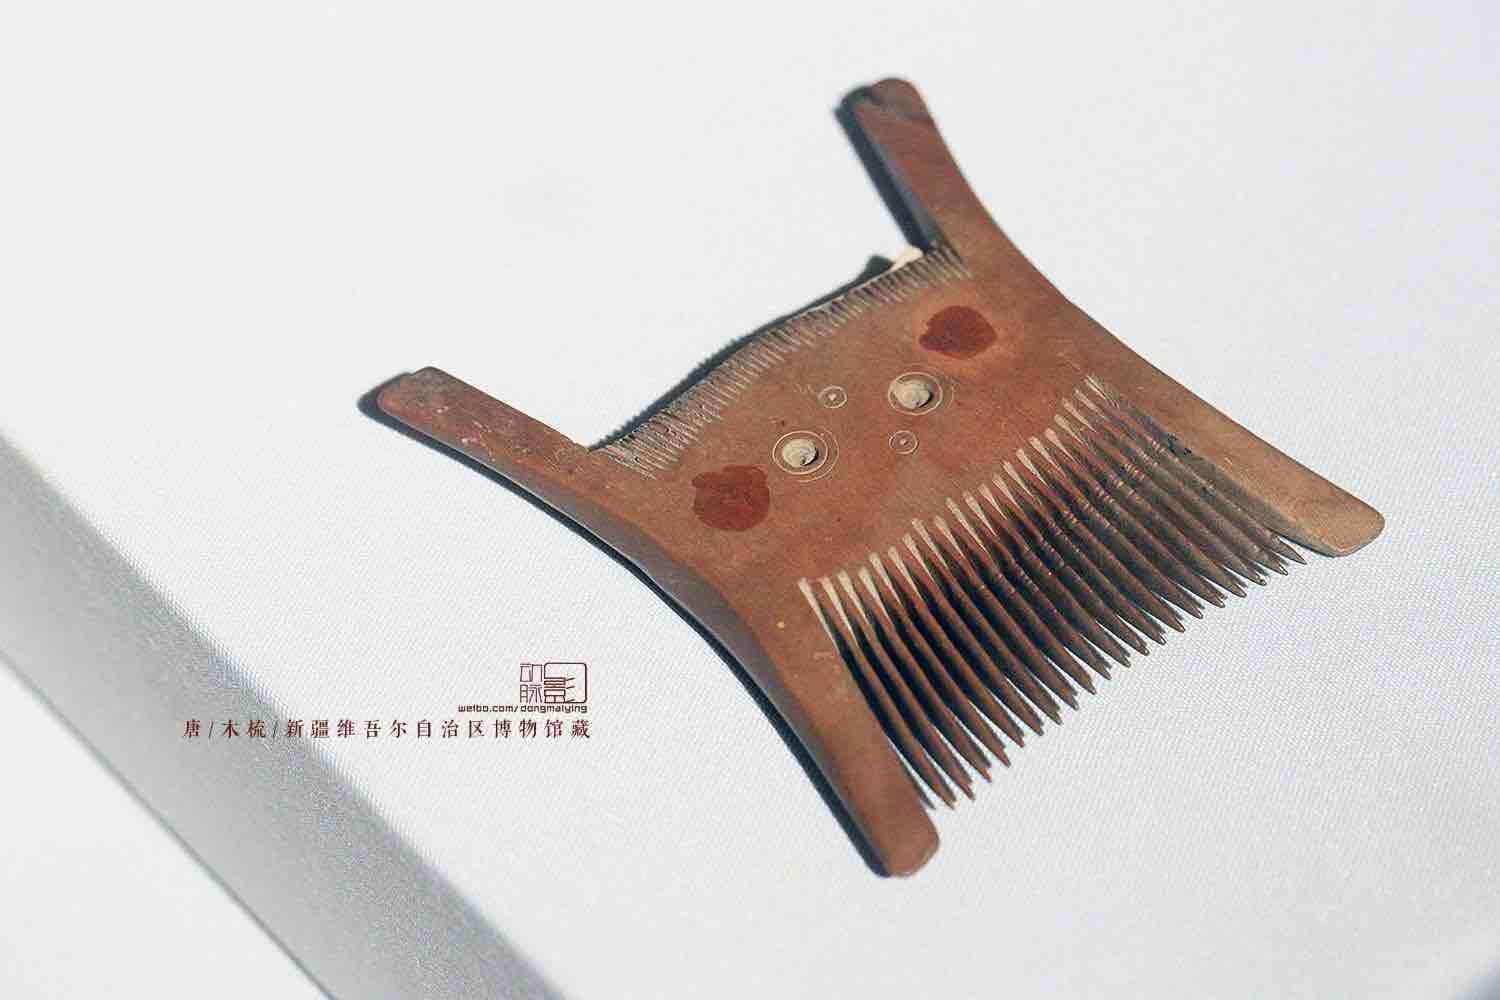 Wooden Comb of the Tang Dynasty (618 — 907) — Xinjiang Museum (Photo by Dongmaiying)